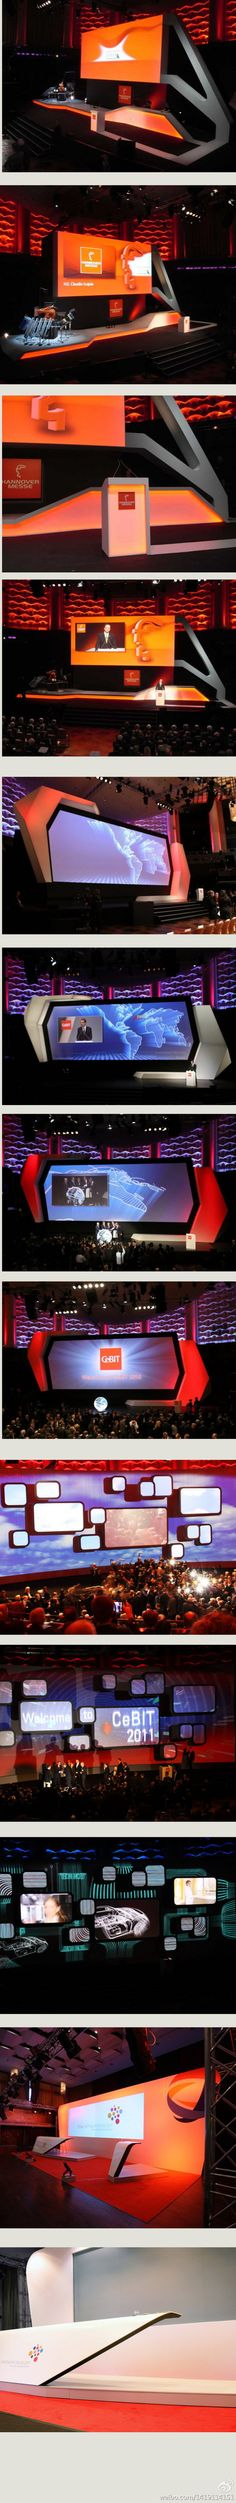 Awesome stage designs with huge evolutions #eventprofs #meetingprofs #meetingplanning #eventplanning